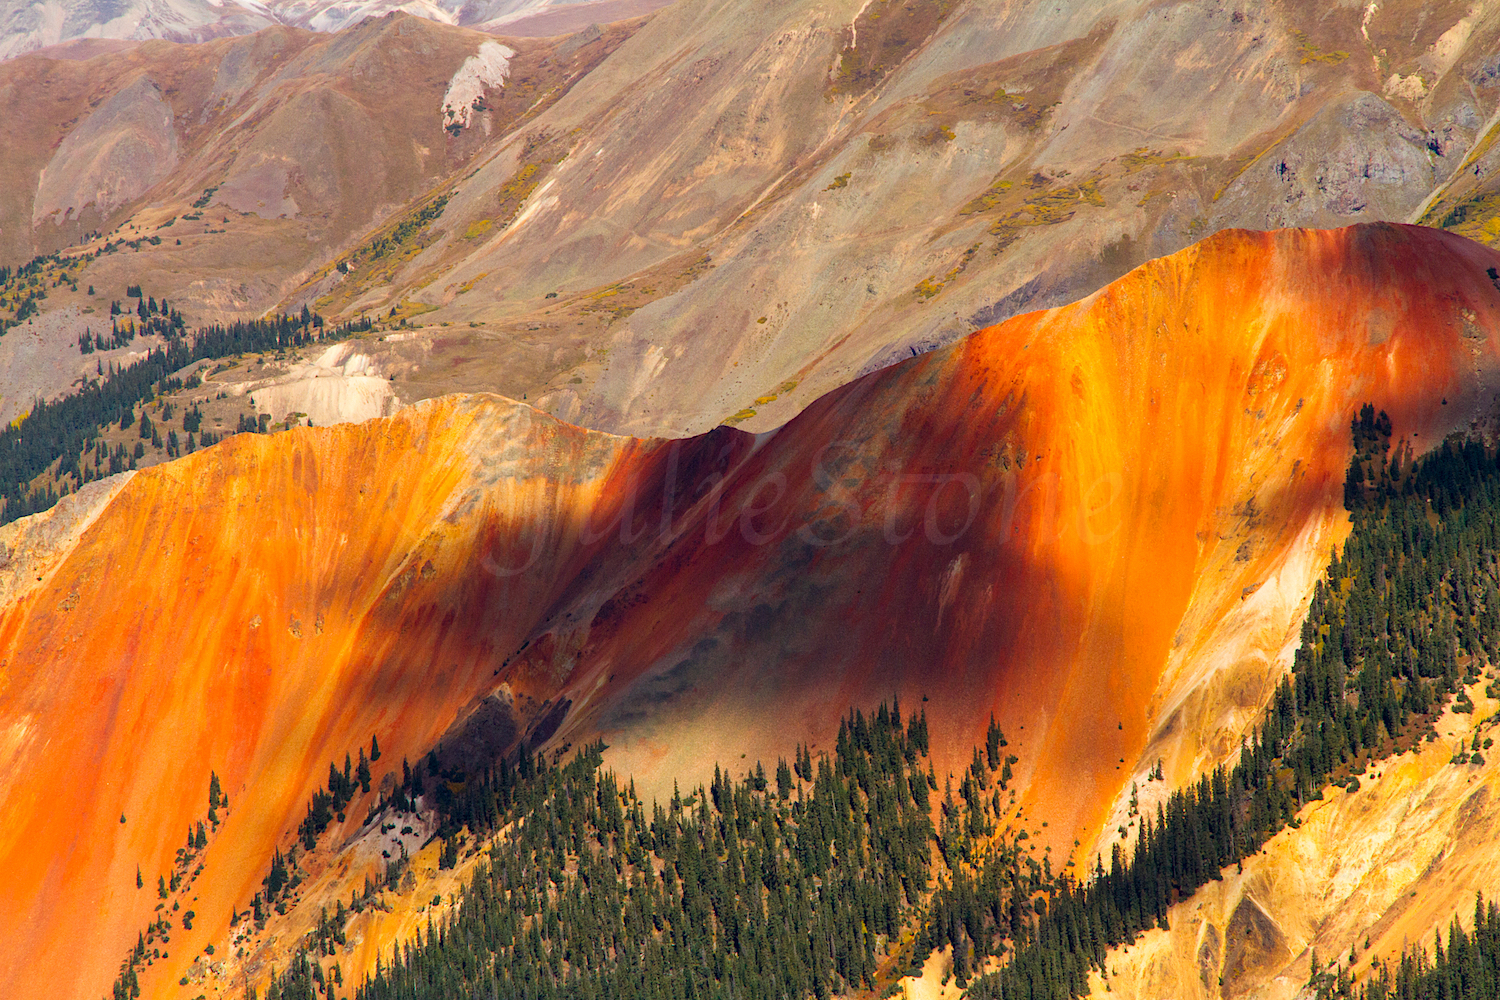 Red Mountain #3, Image # 6254